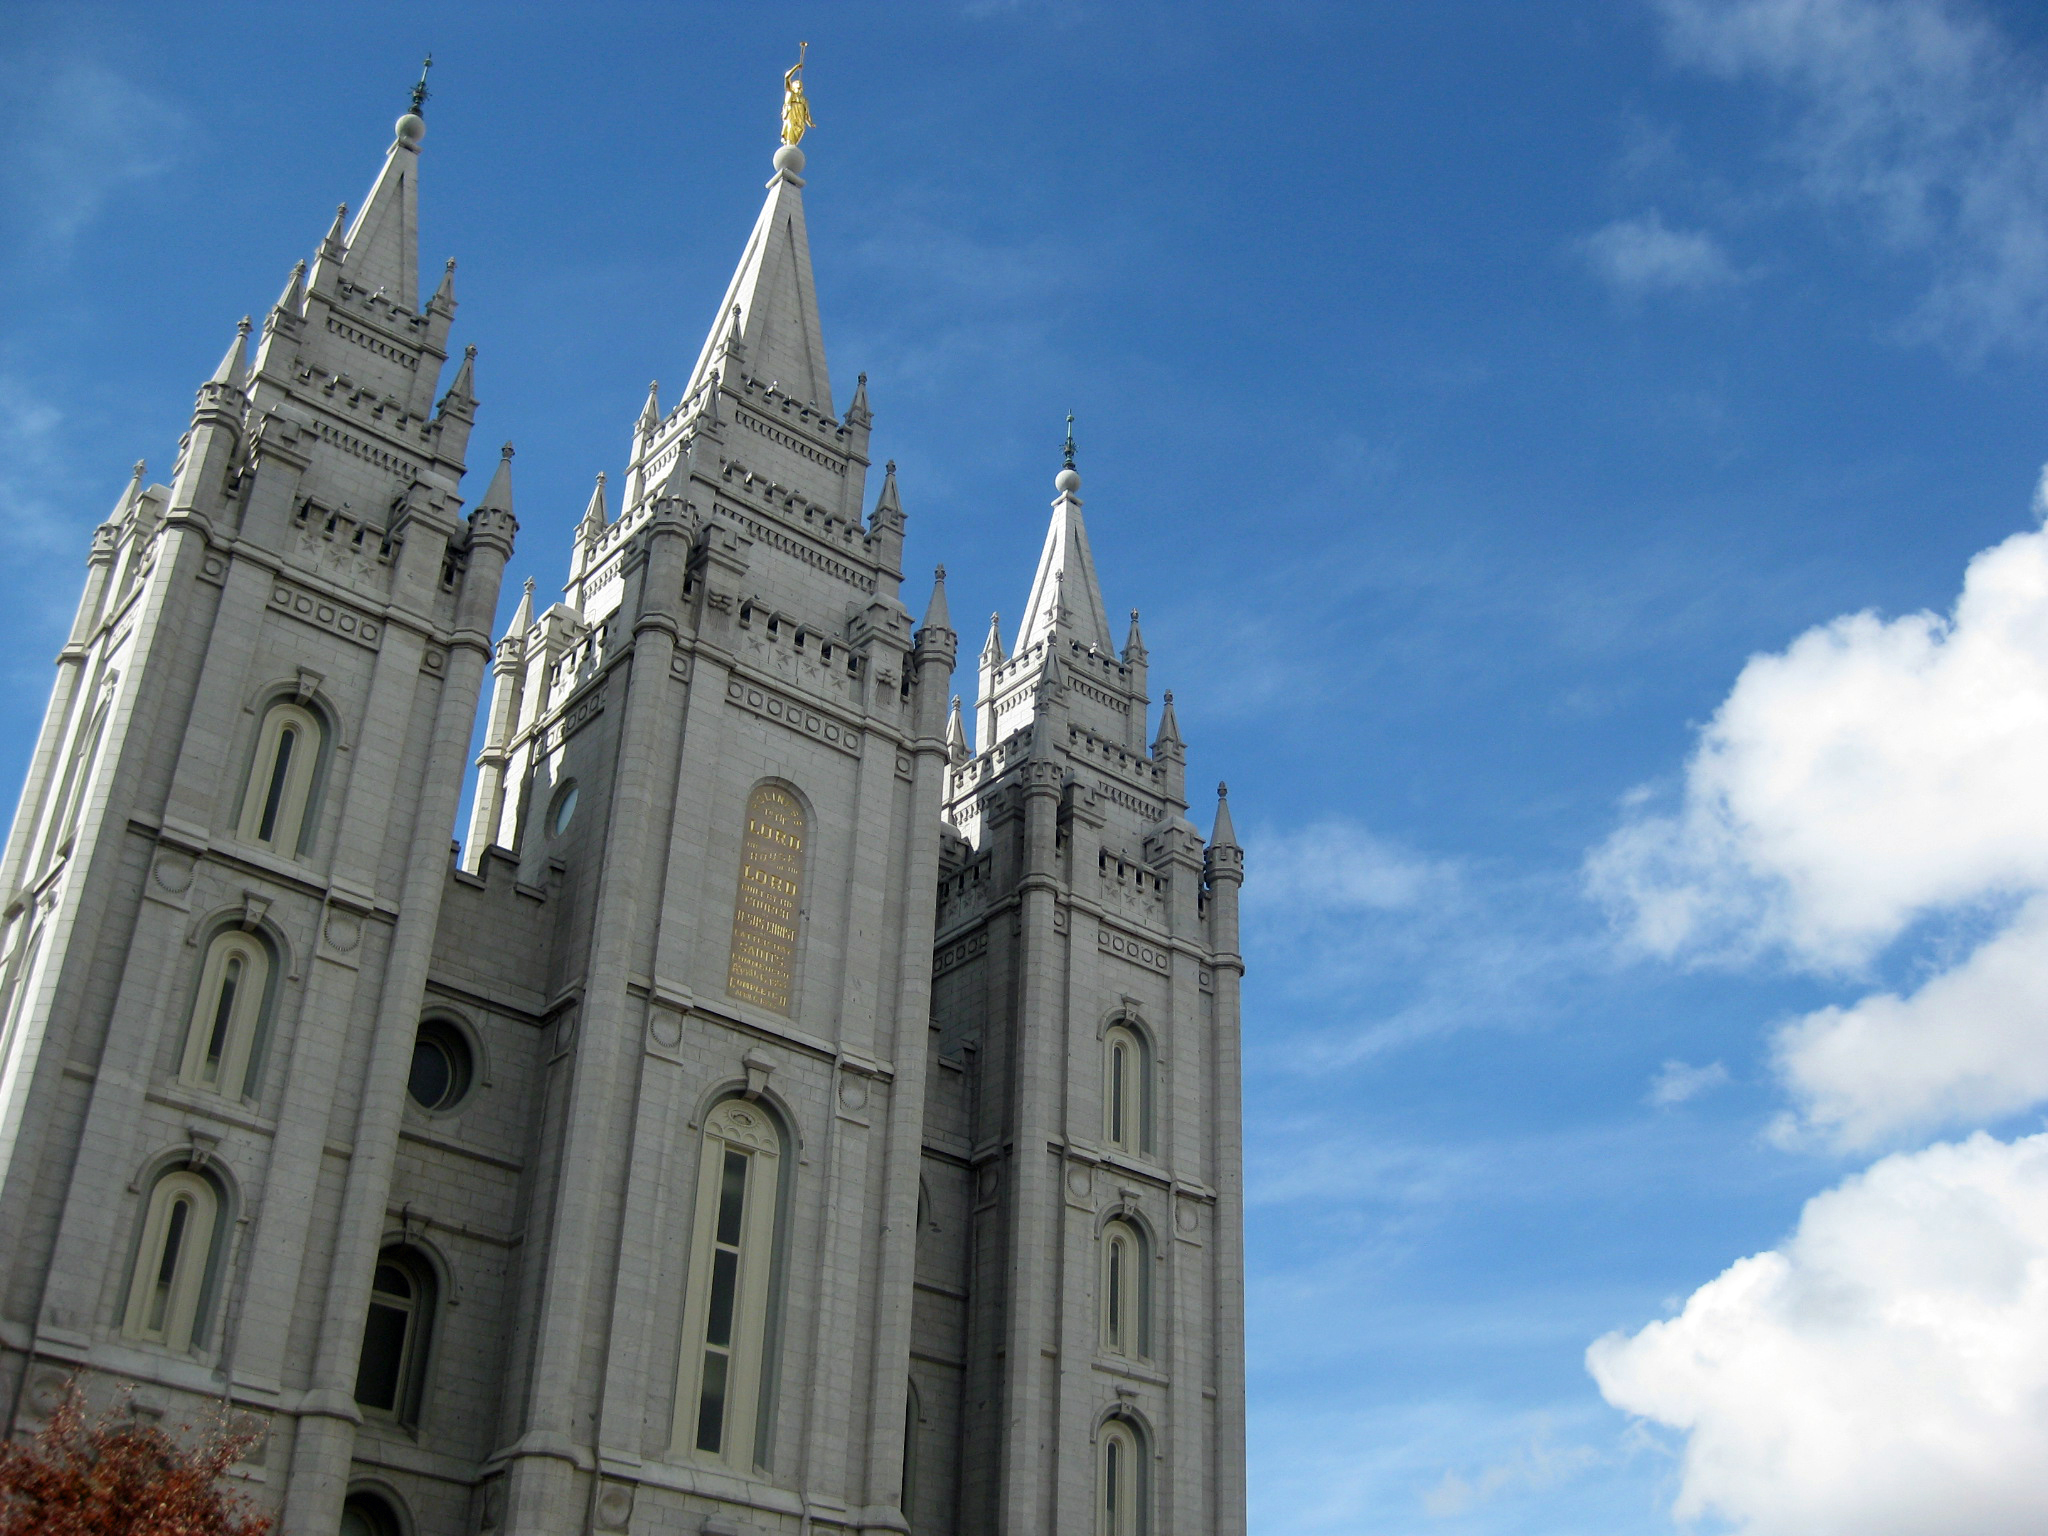 Le temple mormon de Salt Lake City.